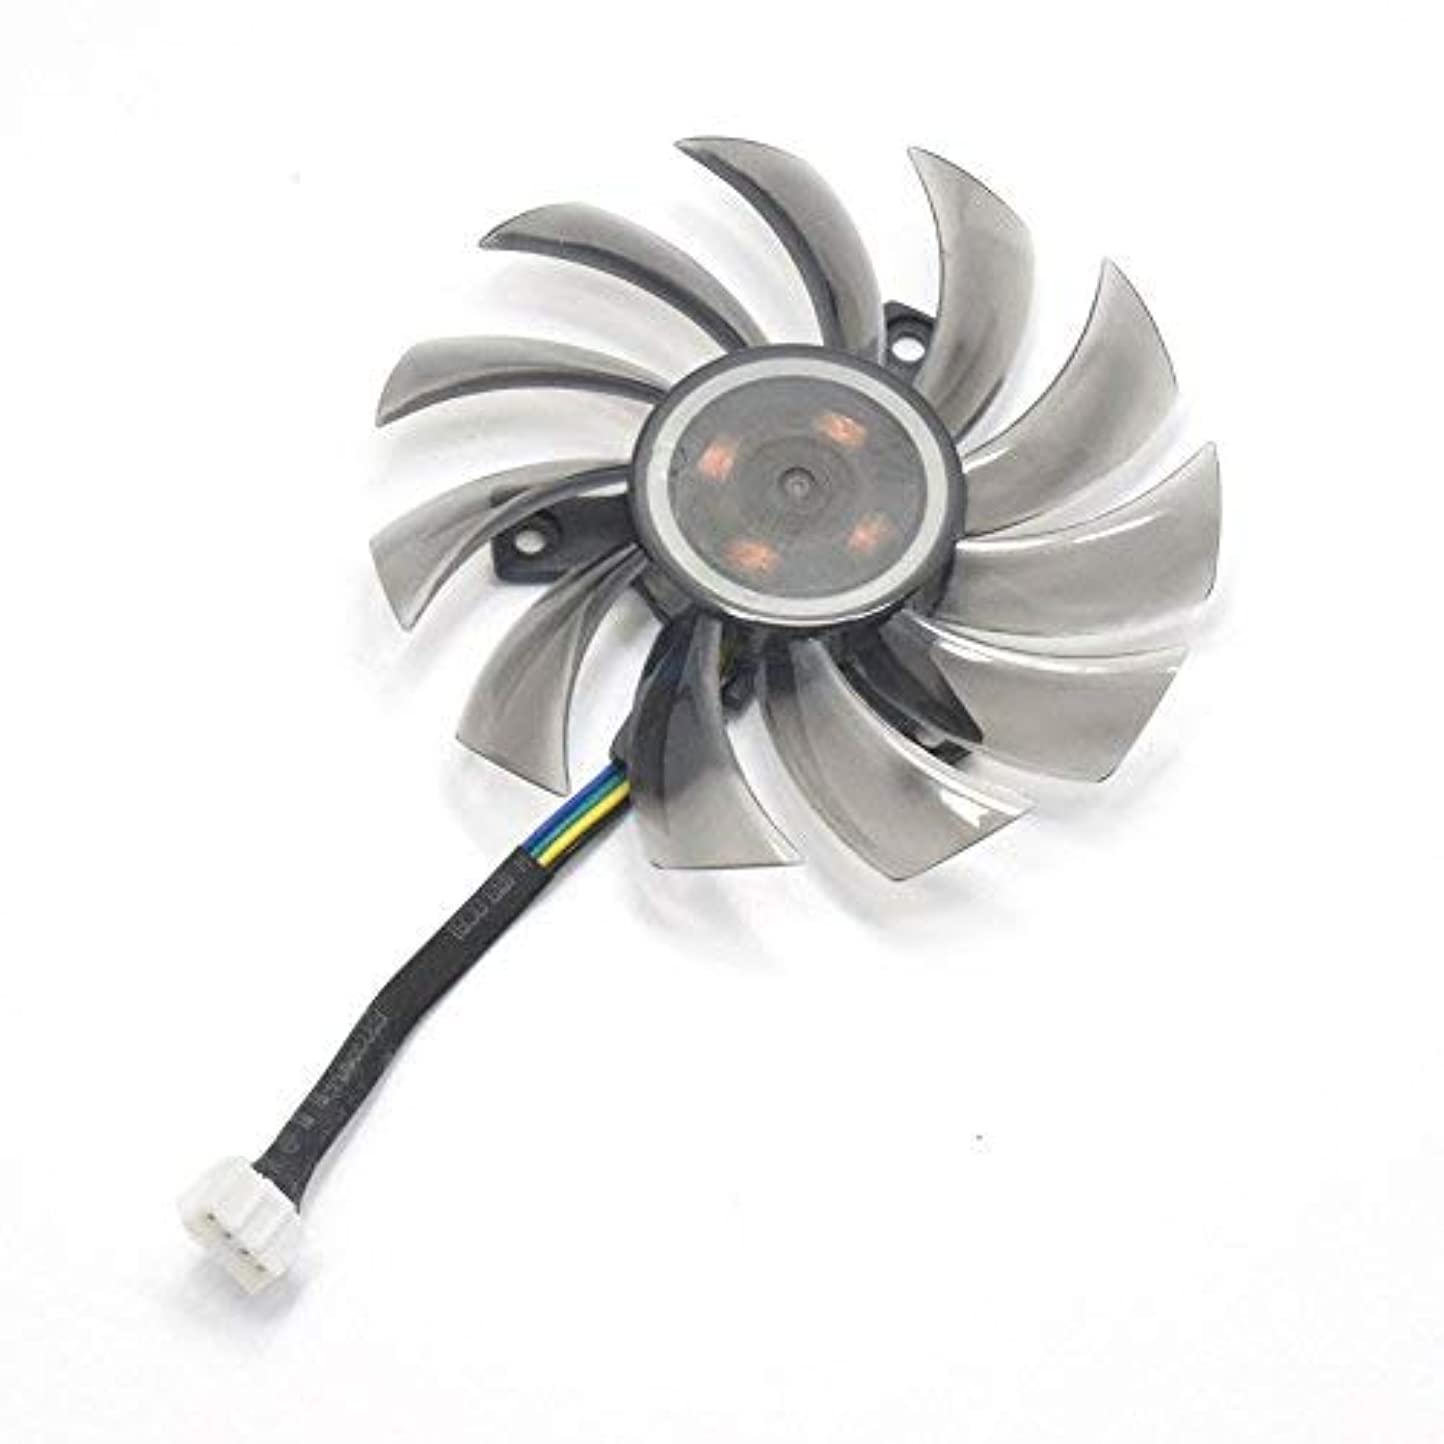 クリケット推論印をつけるinRobert 75mm T128010SU Graphic Card Fan Replacement Cooler For Gigabyte NVIDIA GeForce GTX 760 770 780 670 580 GPU (1pc) [並行輸入品]